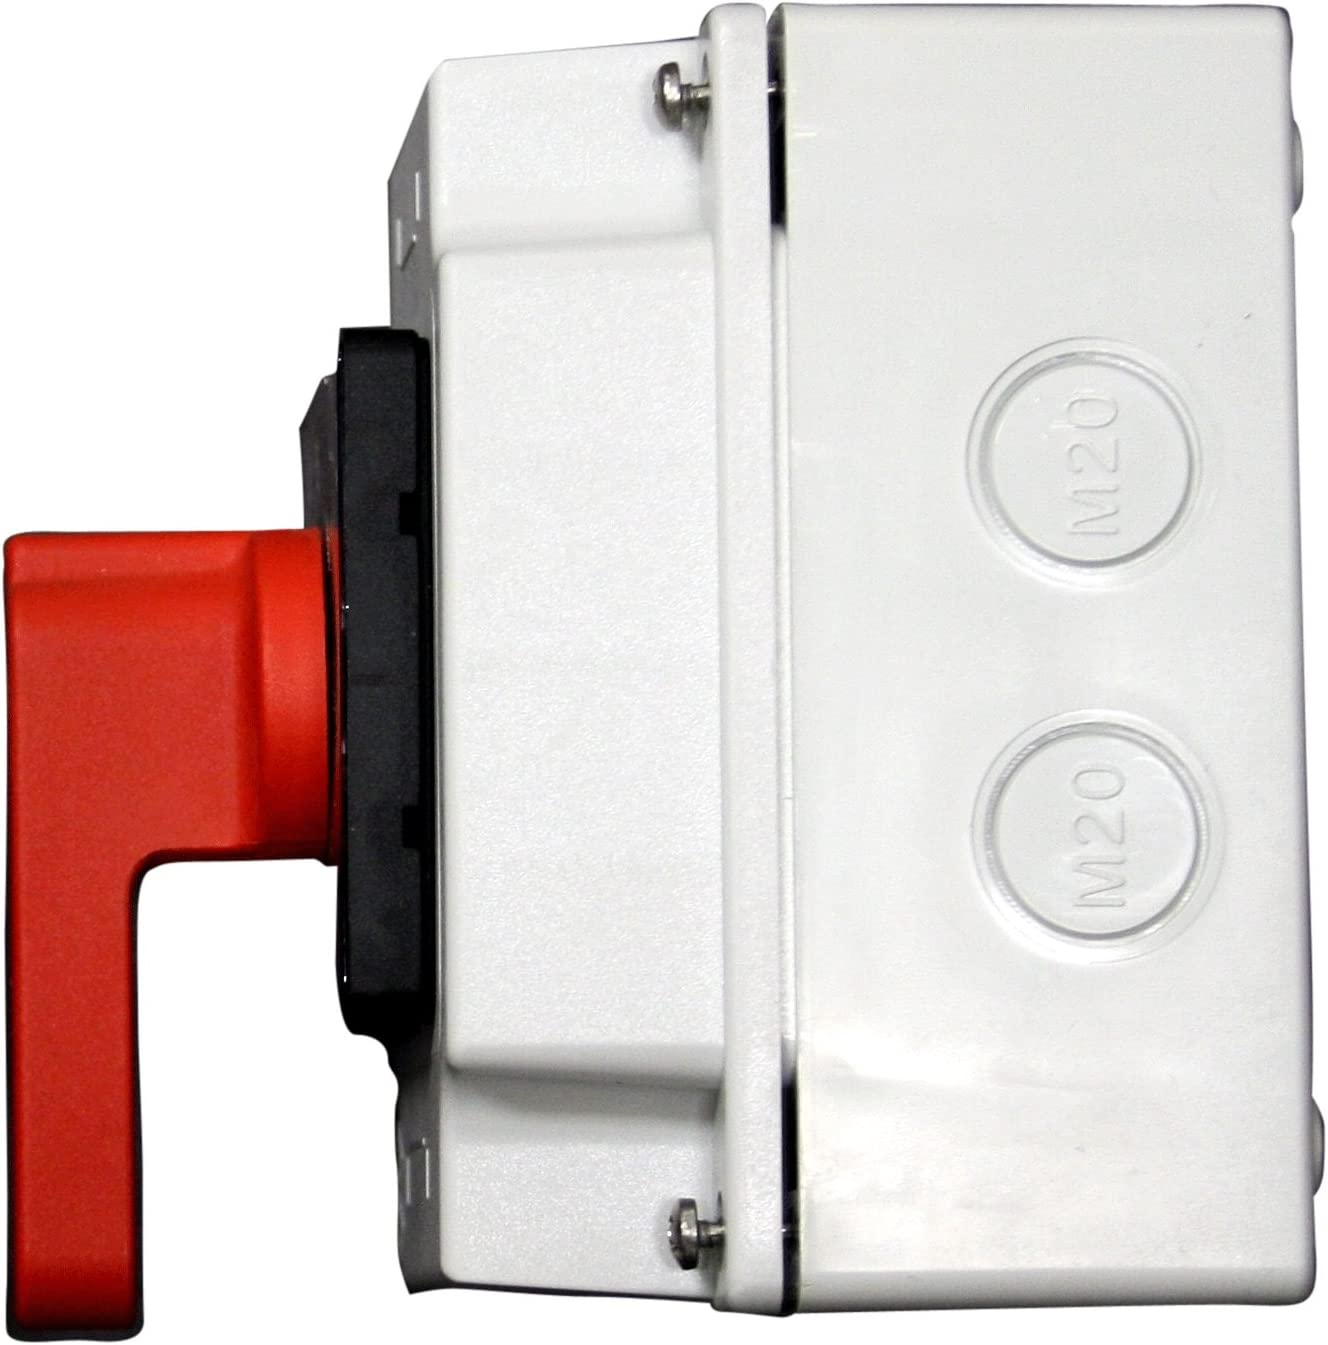 Boat Lift Switch Box Motors Grip Handles Momentary Durable Housing BH USA New